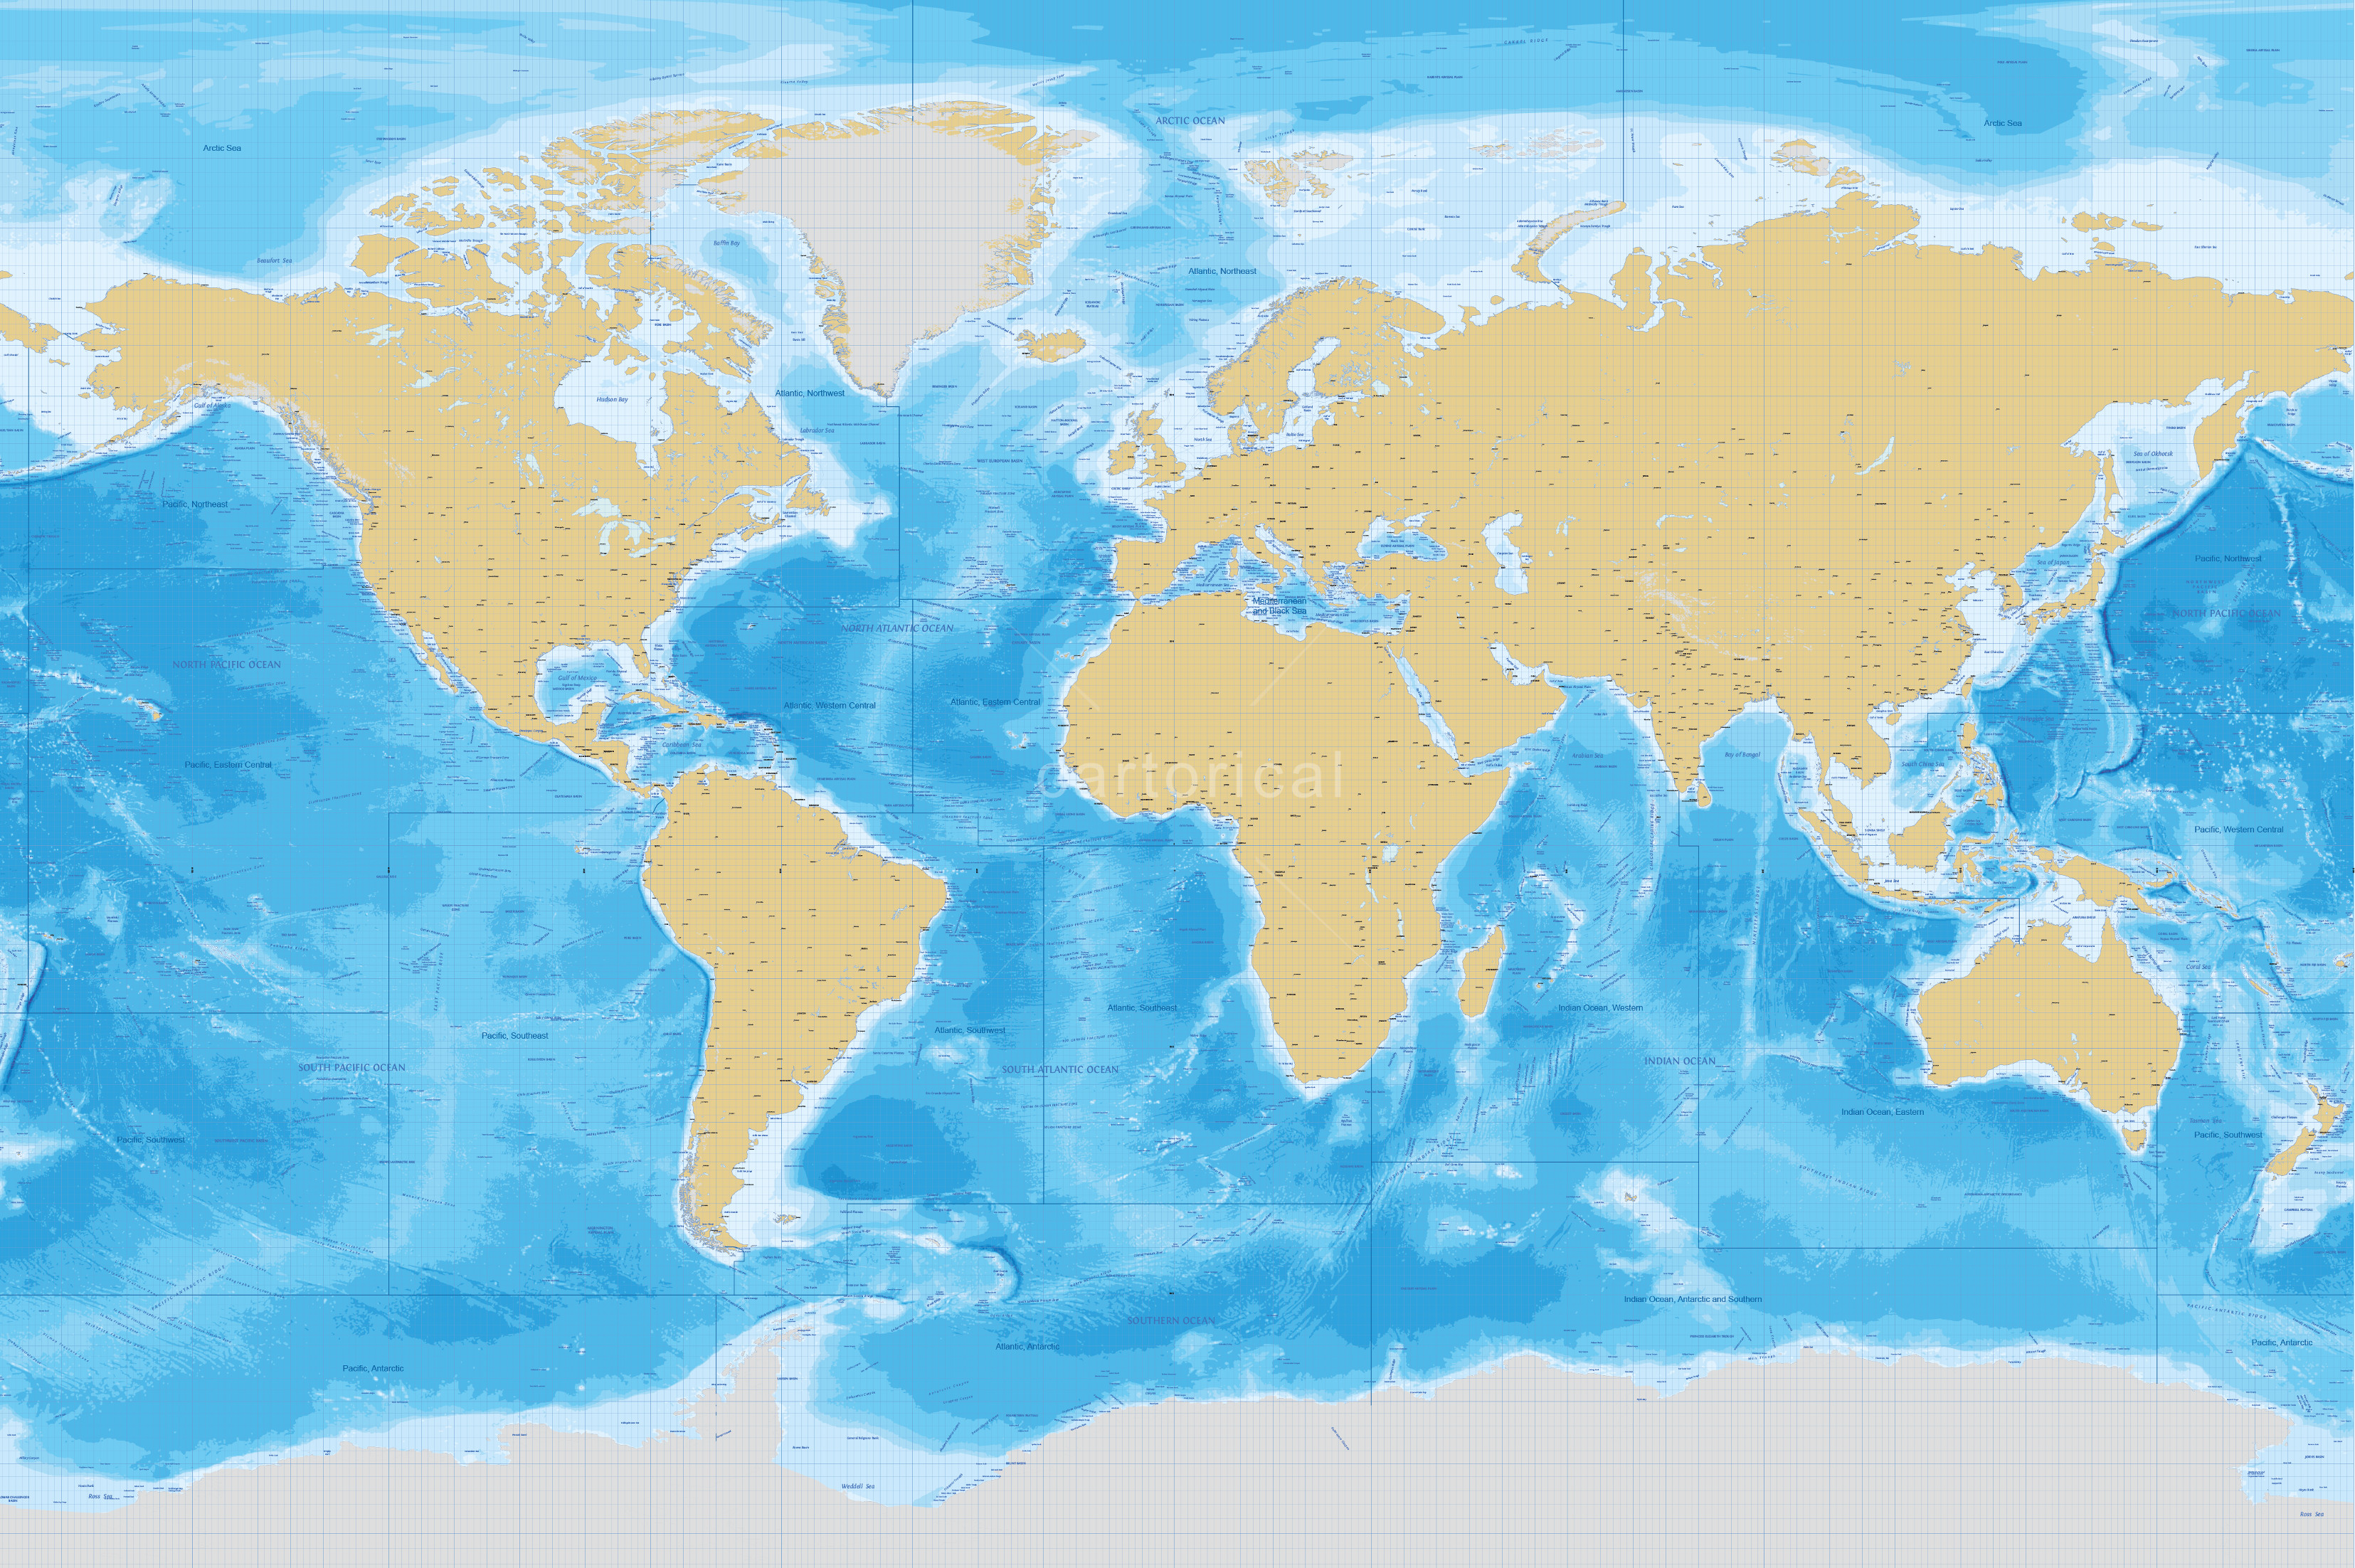 Cartorical World Marine Map